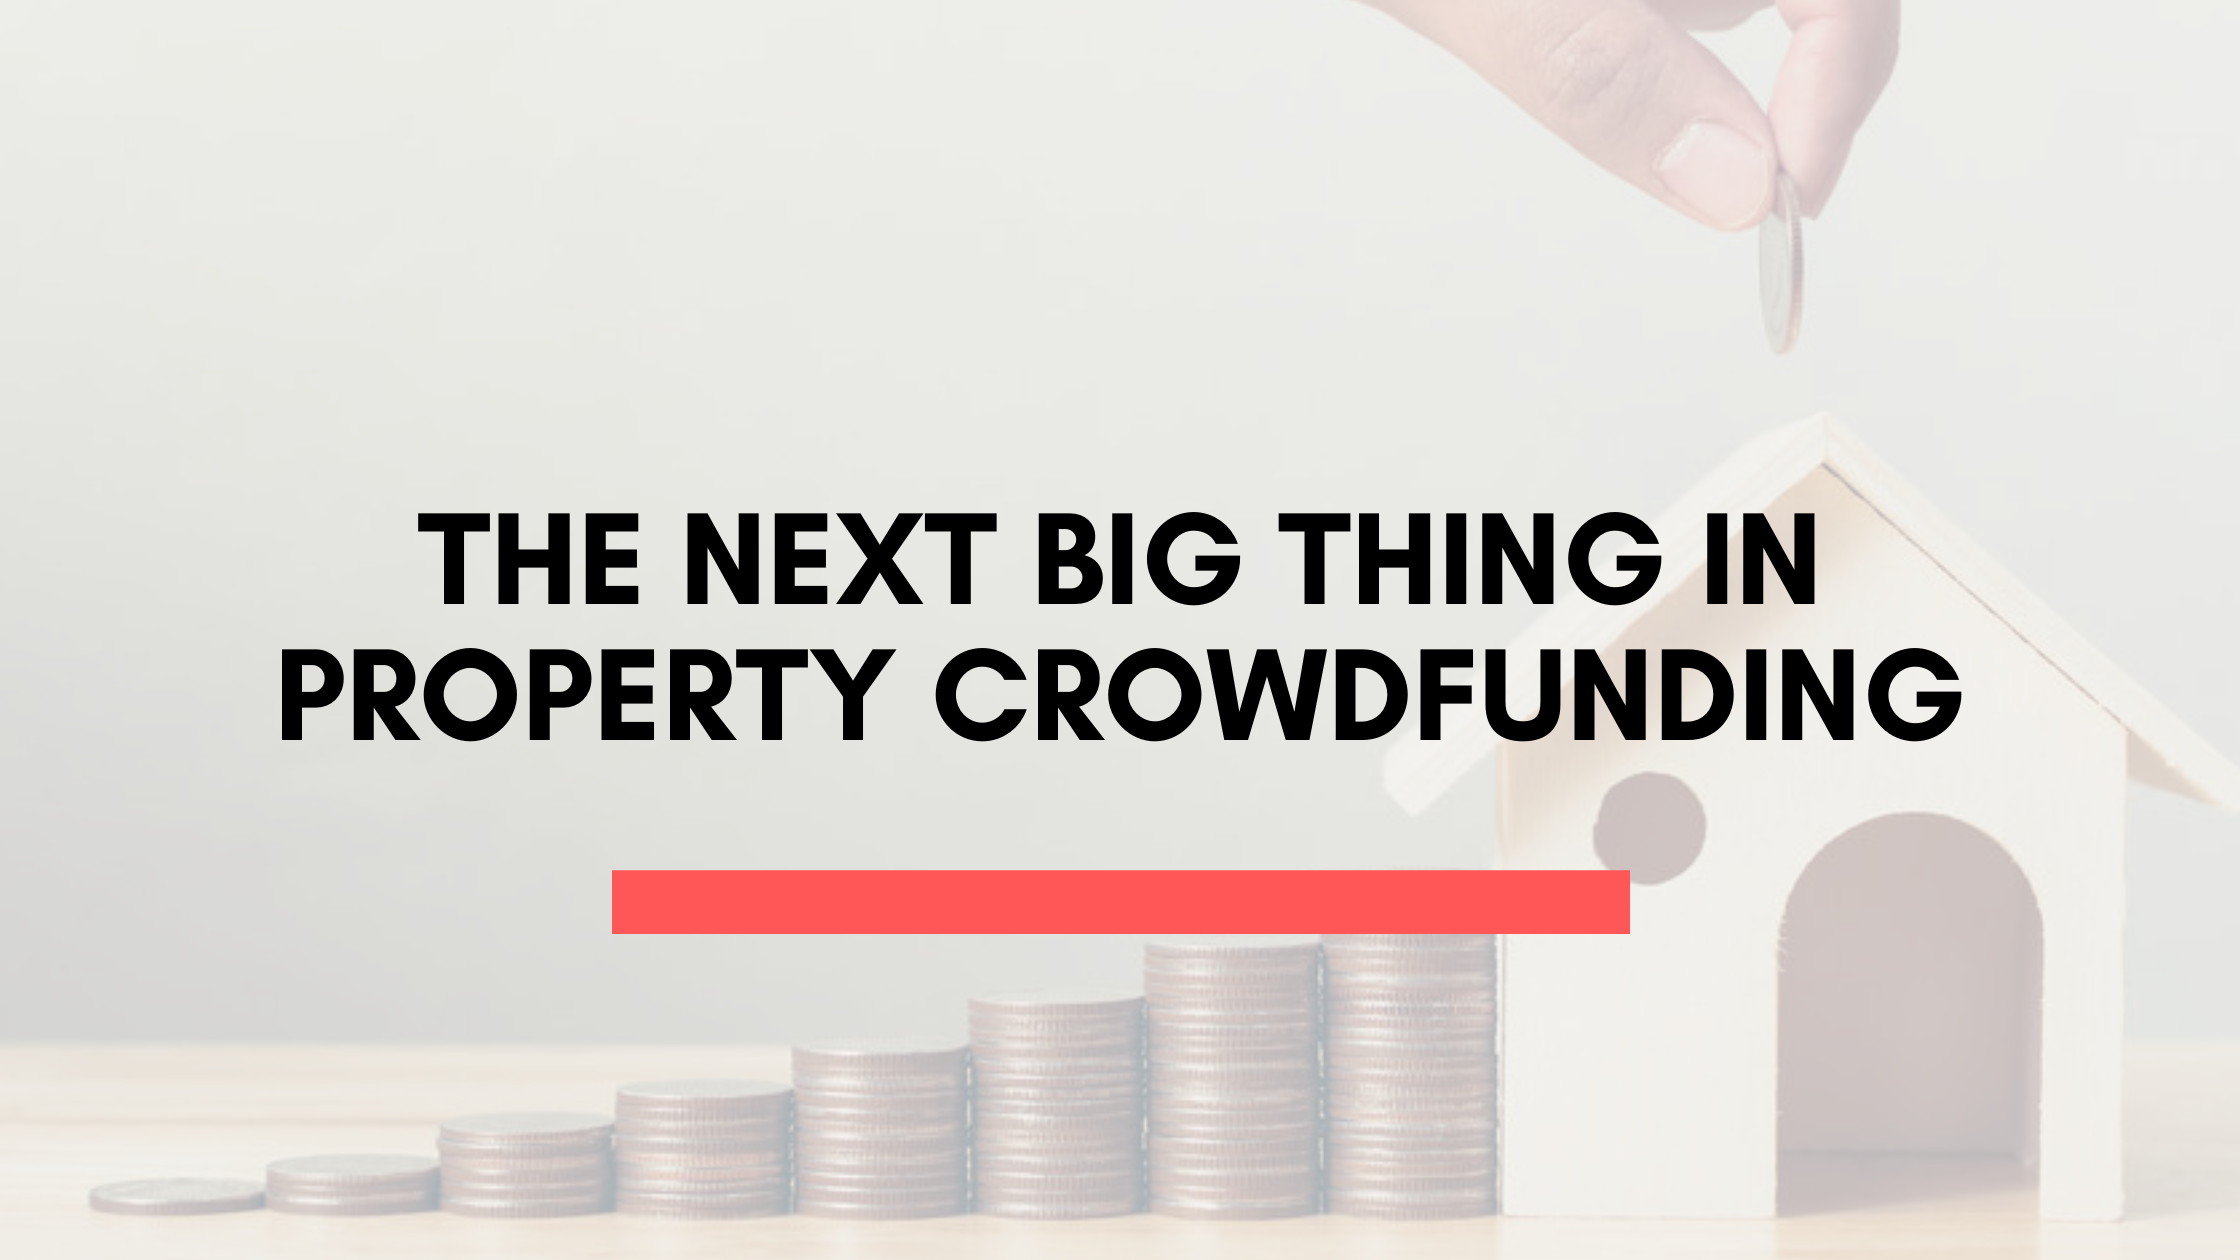 The Next Big Thing In Property Crowdfunding